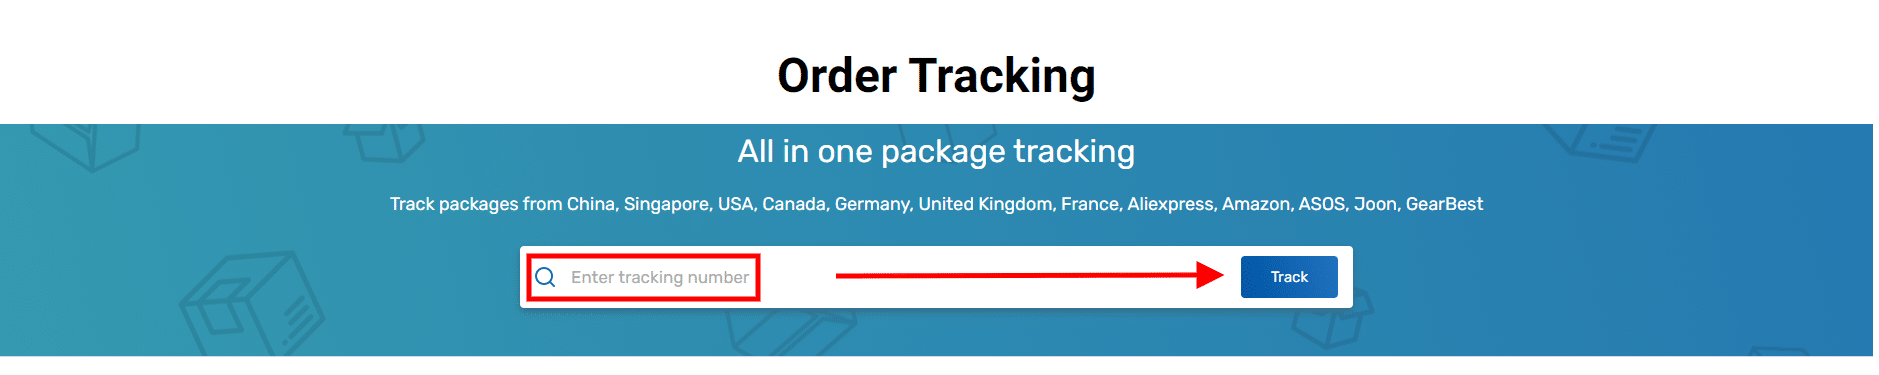 Order tracking msow